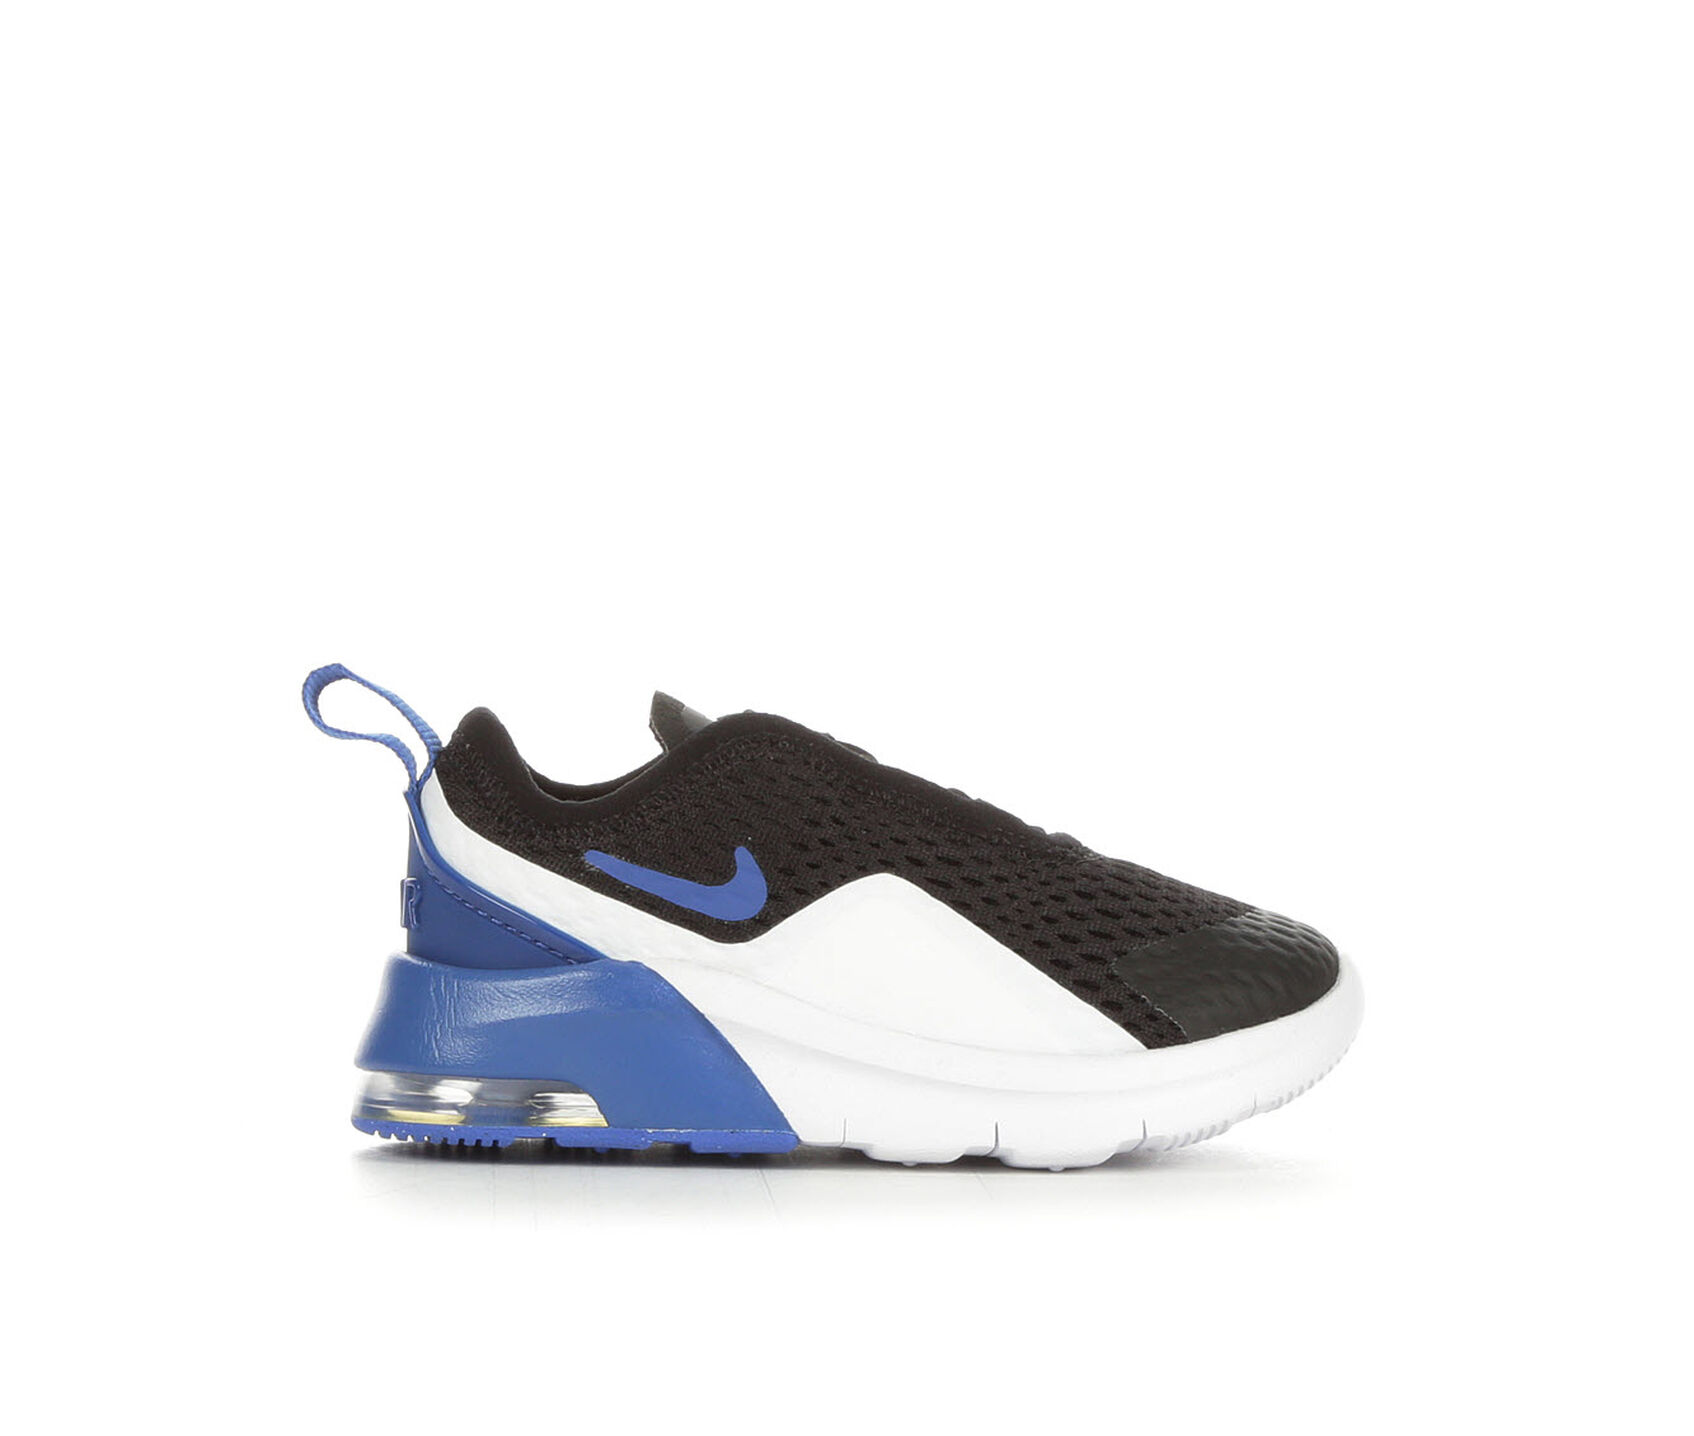 76856357c3 Boys' Nike Infant & Toddler Air Max Motion 2 Athletic Shoes | Shoe ...